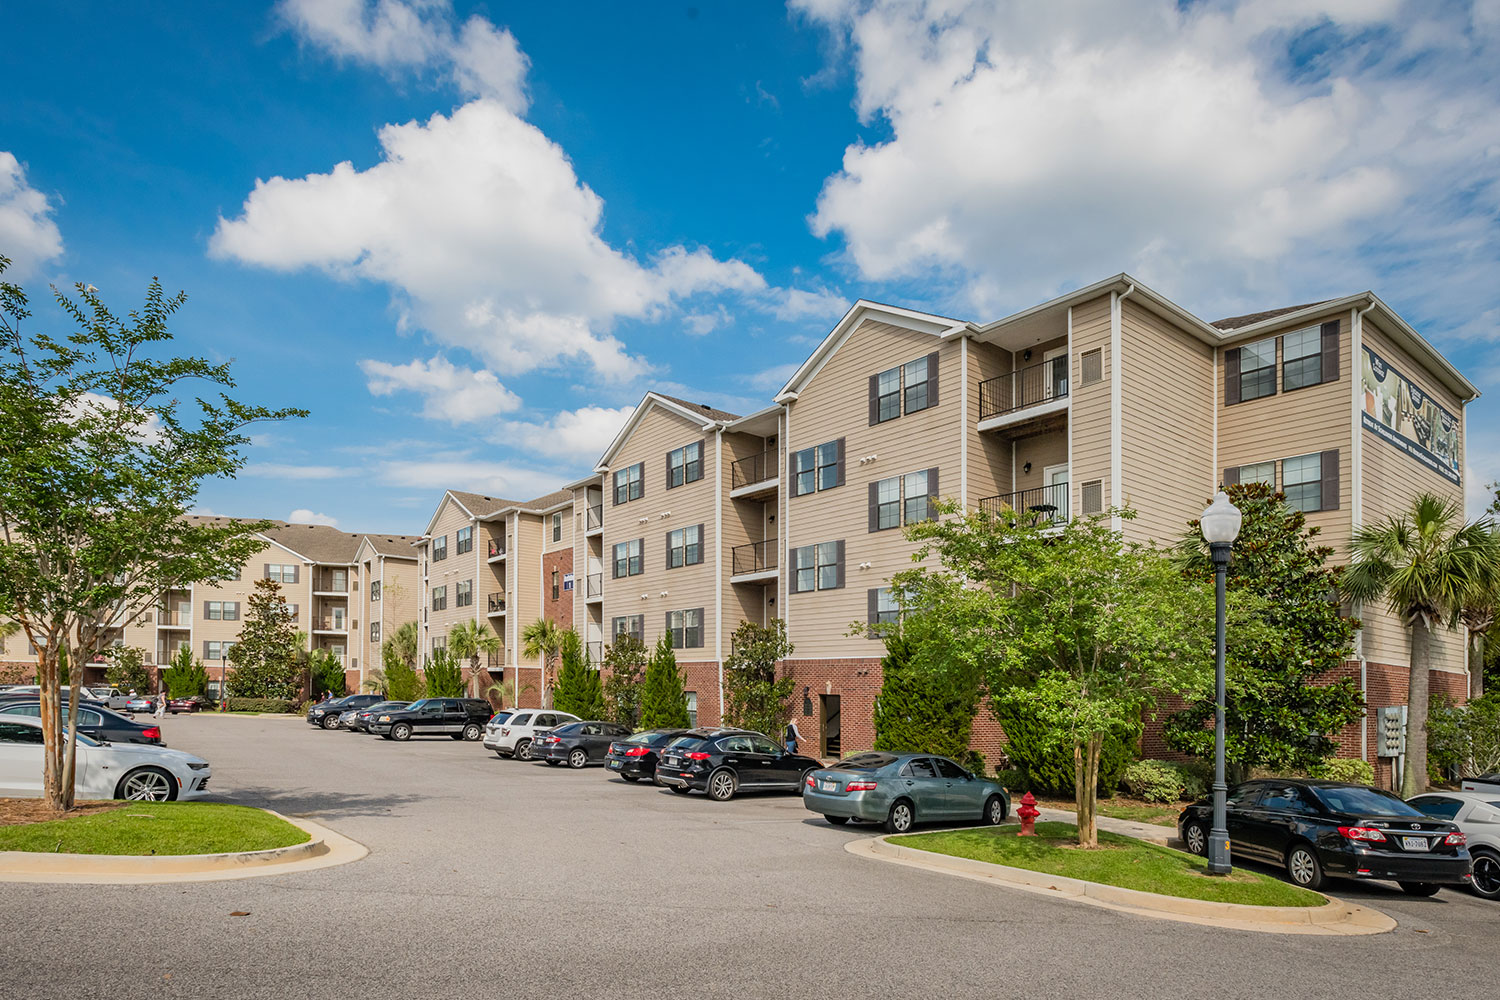 Balfour Beatty Communities acquires 530 units in two-property multifamily deal